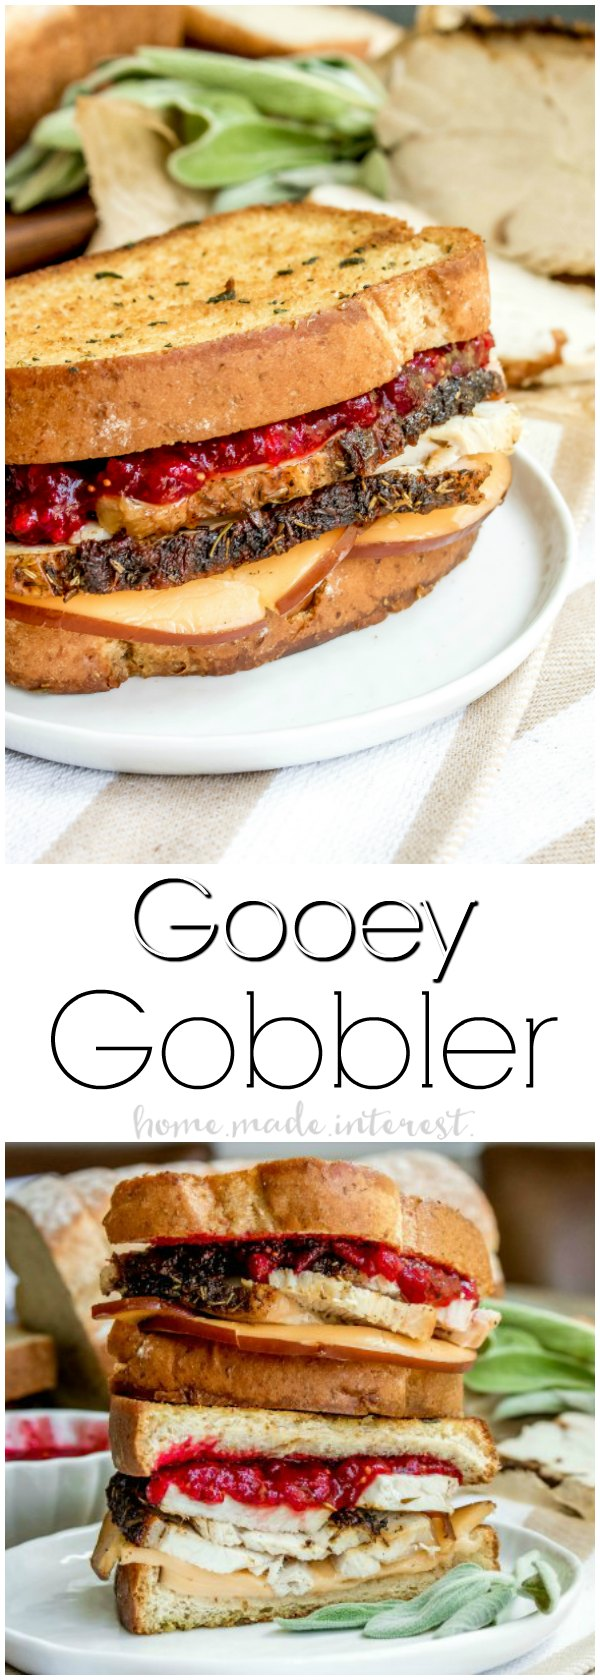 Gooey Gobbler Grilled Cheese Sandwich | The Gooey Gobbler is a grilled cheese sandwich piled high with turkey breast, smoked gouda, and cranberry sauce. If you are looking for an amazing comfort food recipe this grilled cheese recipe is it! This is the perfect recipe for using up Thanksgiving leftovers!